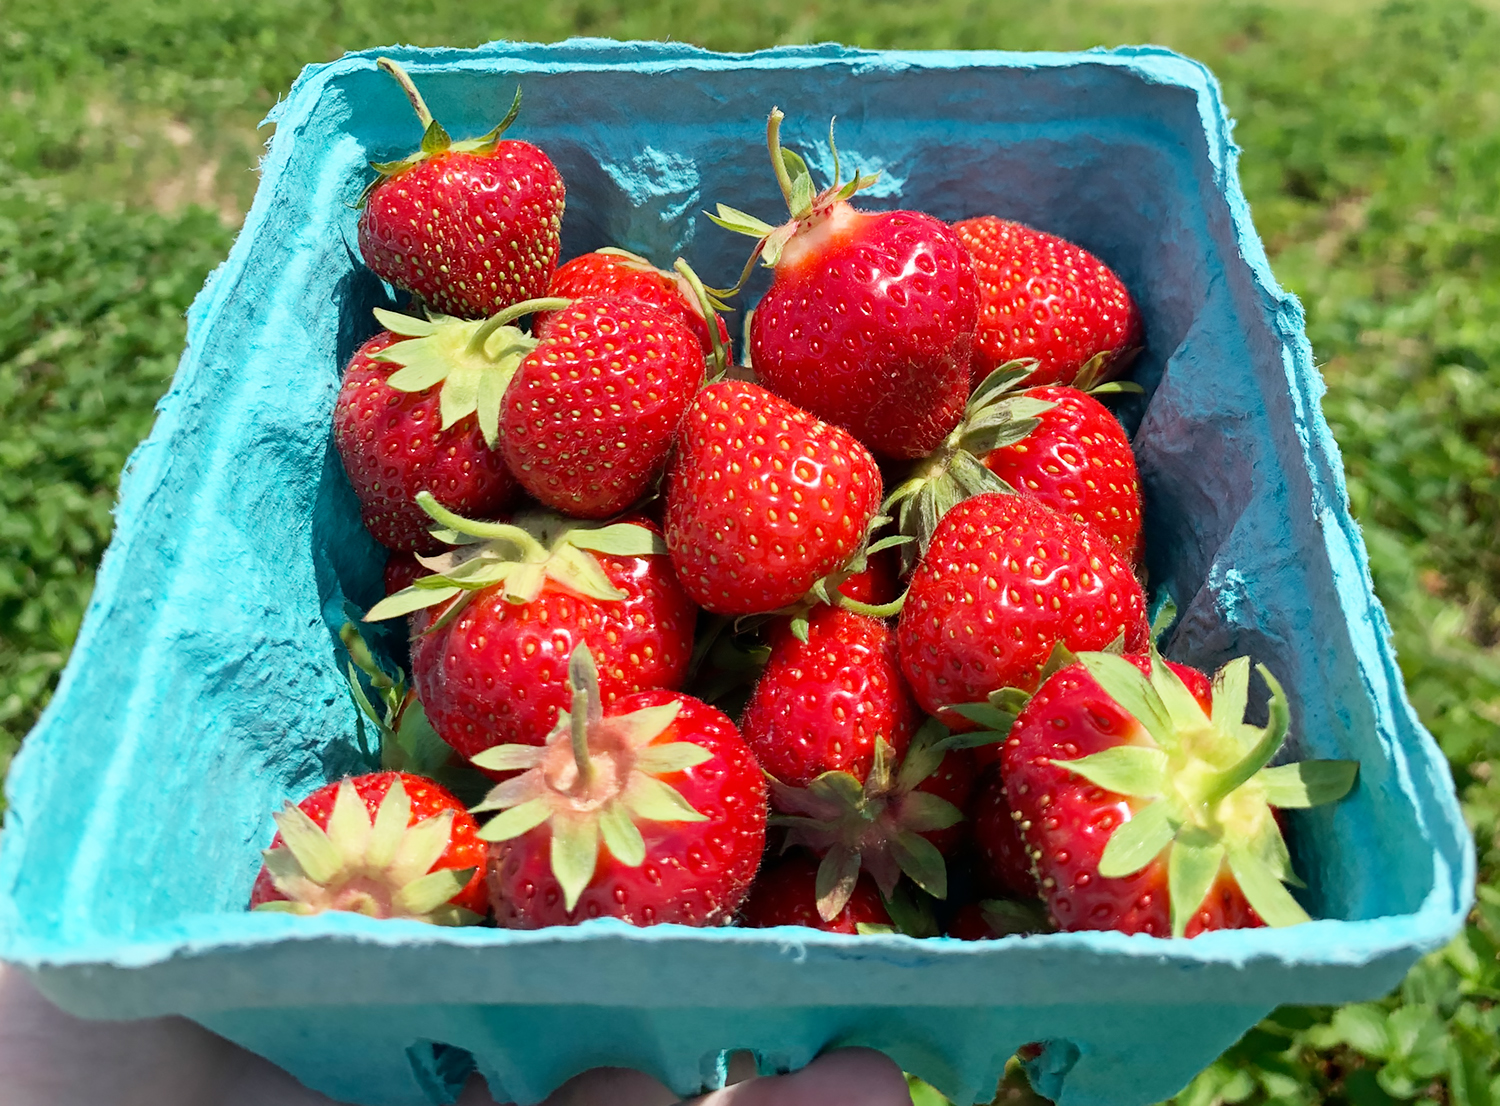 DAYTRIP: Picking Strawberries at Lewin Farms on Long Island